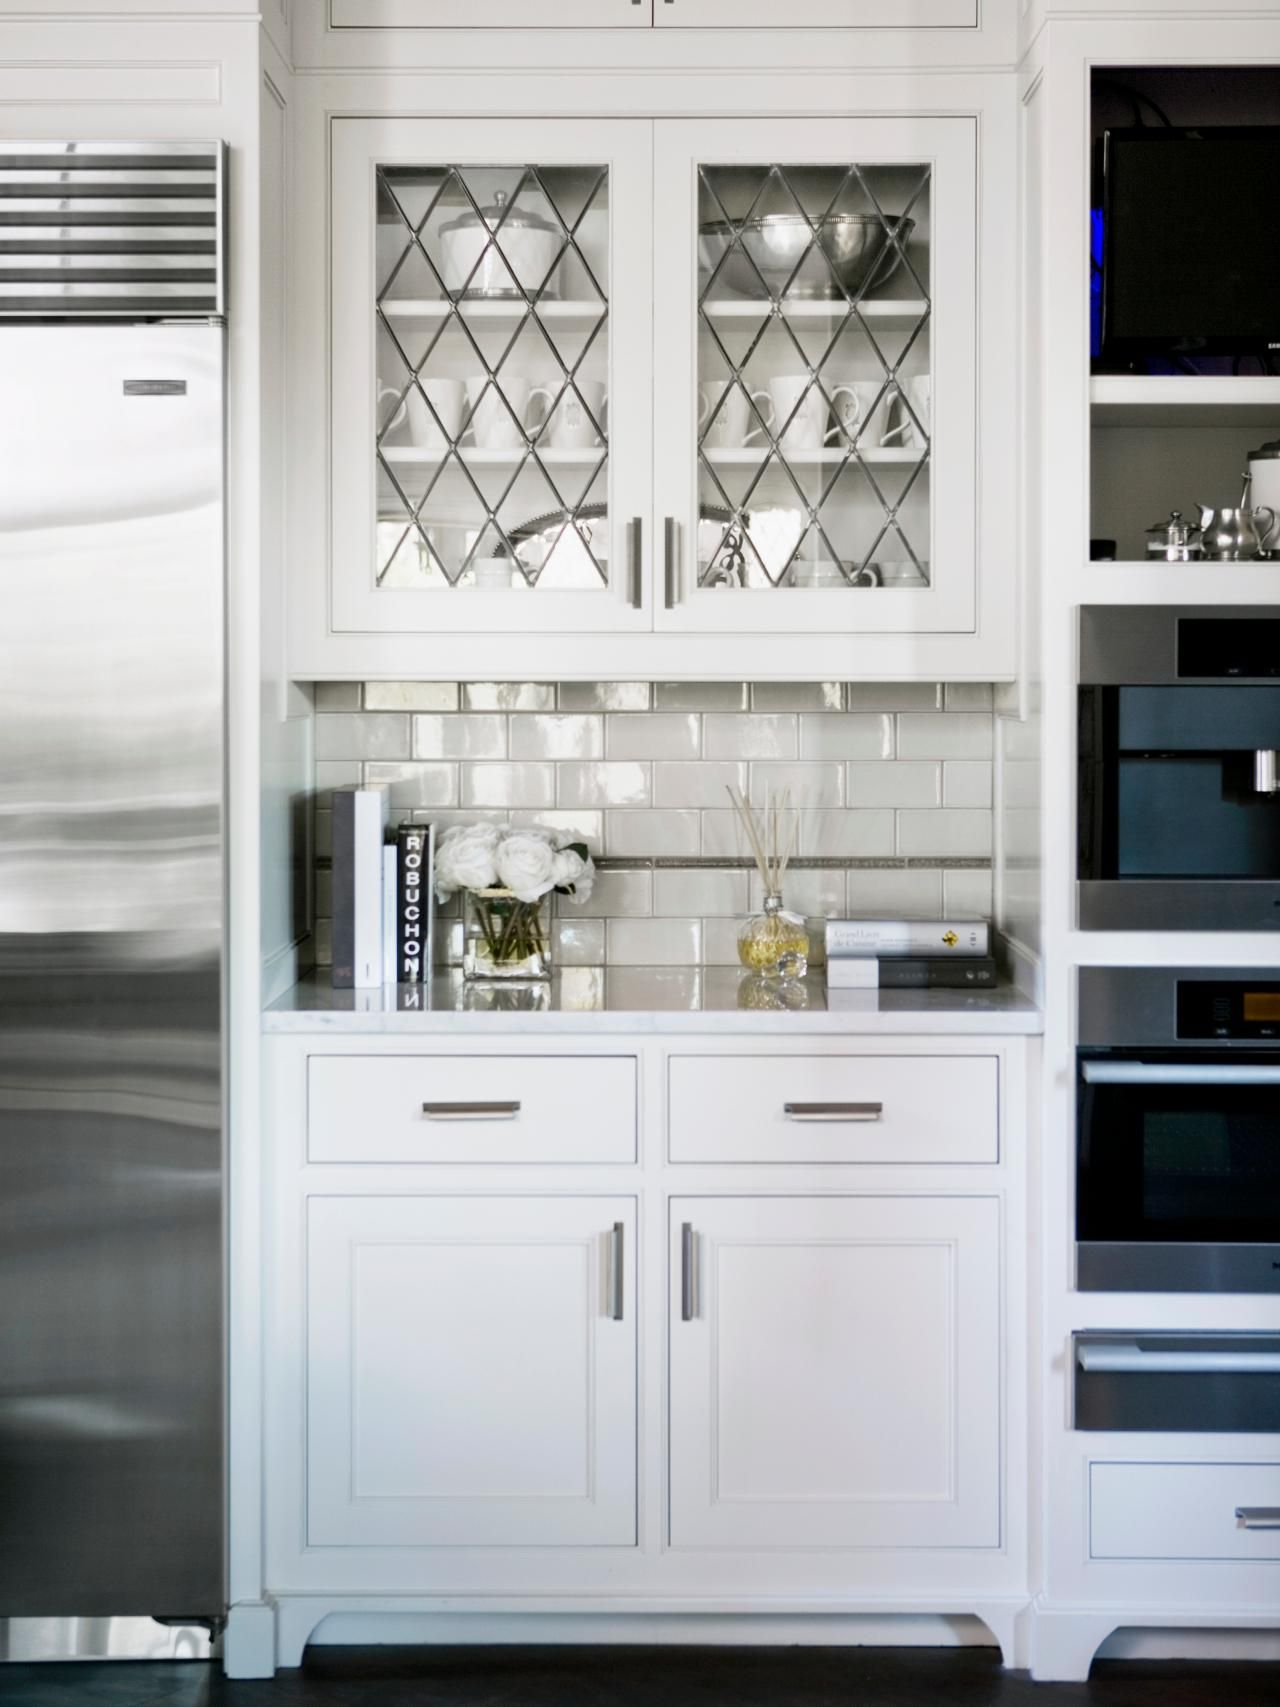 Nice Glass Front Cabinets Hang Above A Subway Tile Backsplash In This White  Kitchen Nook.